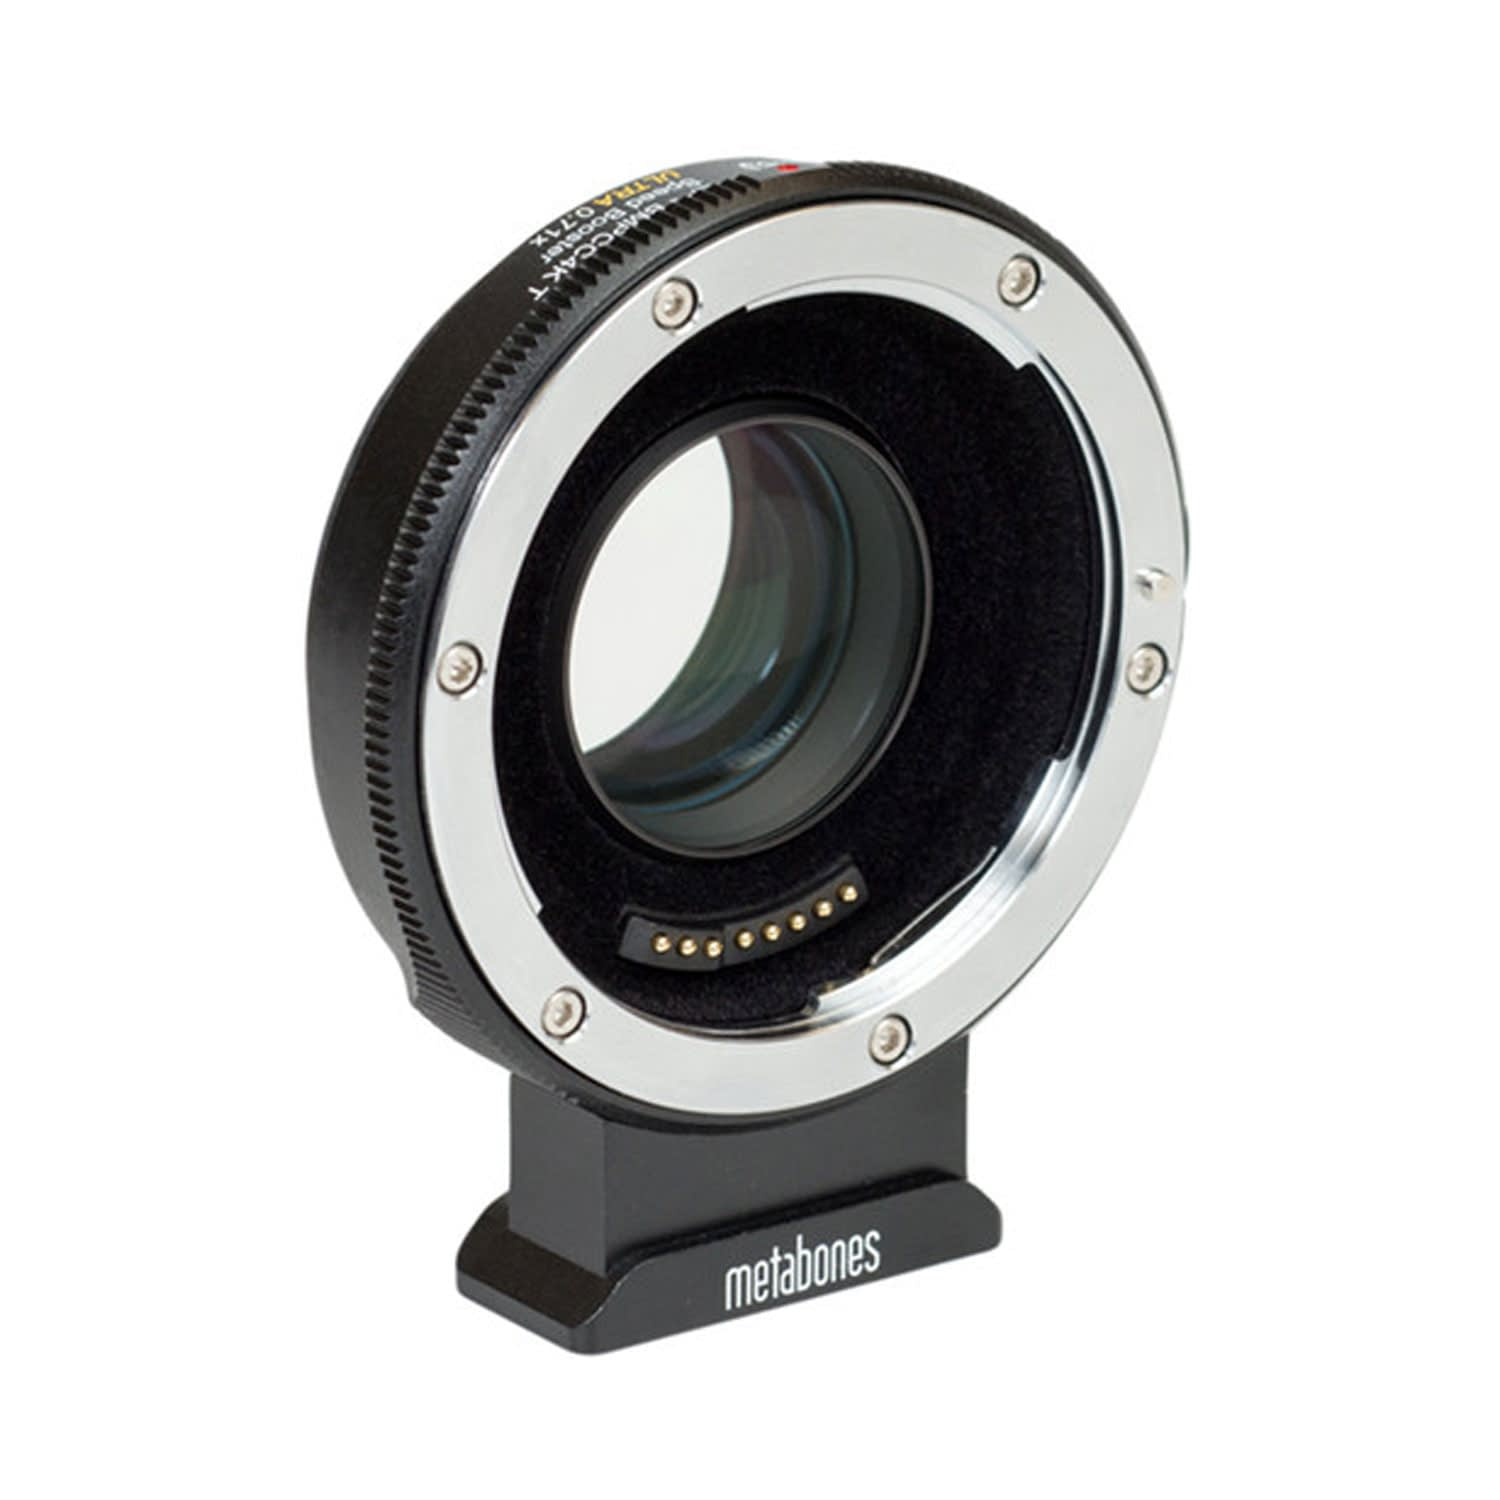 Metabones speedbooster EF to MFT